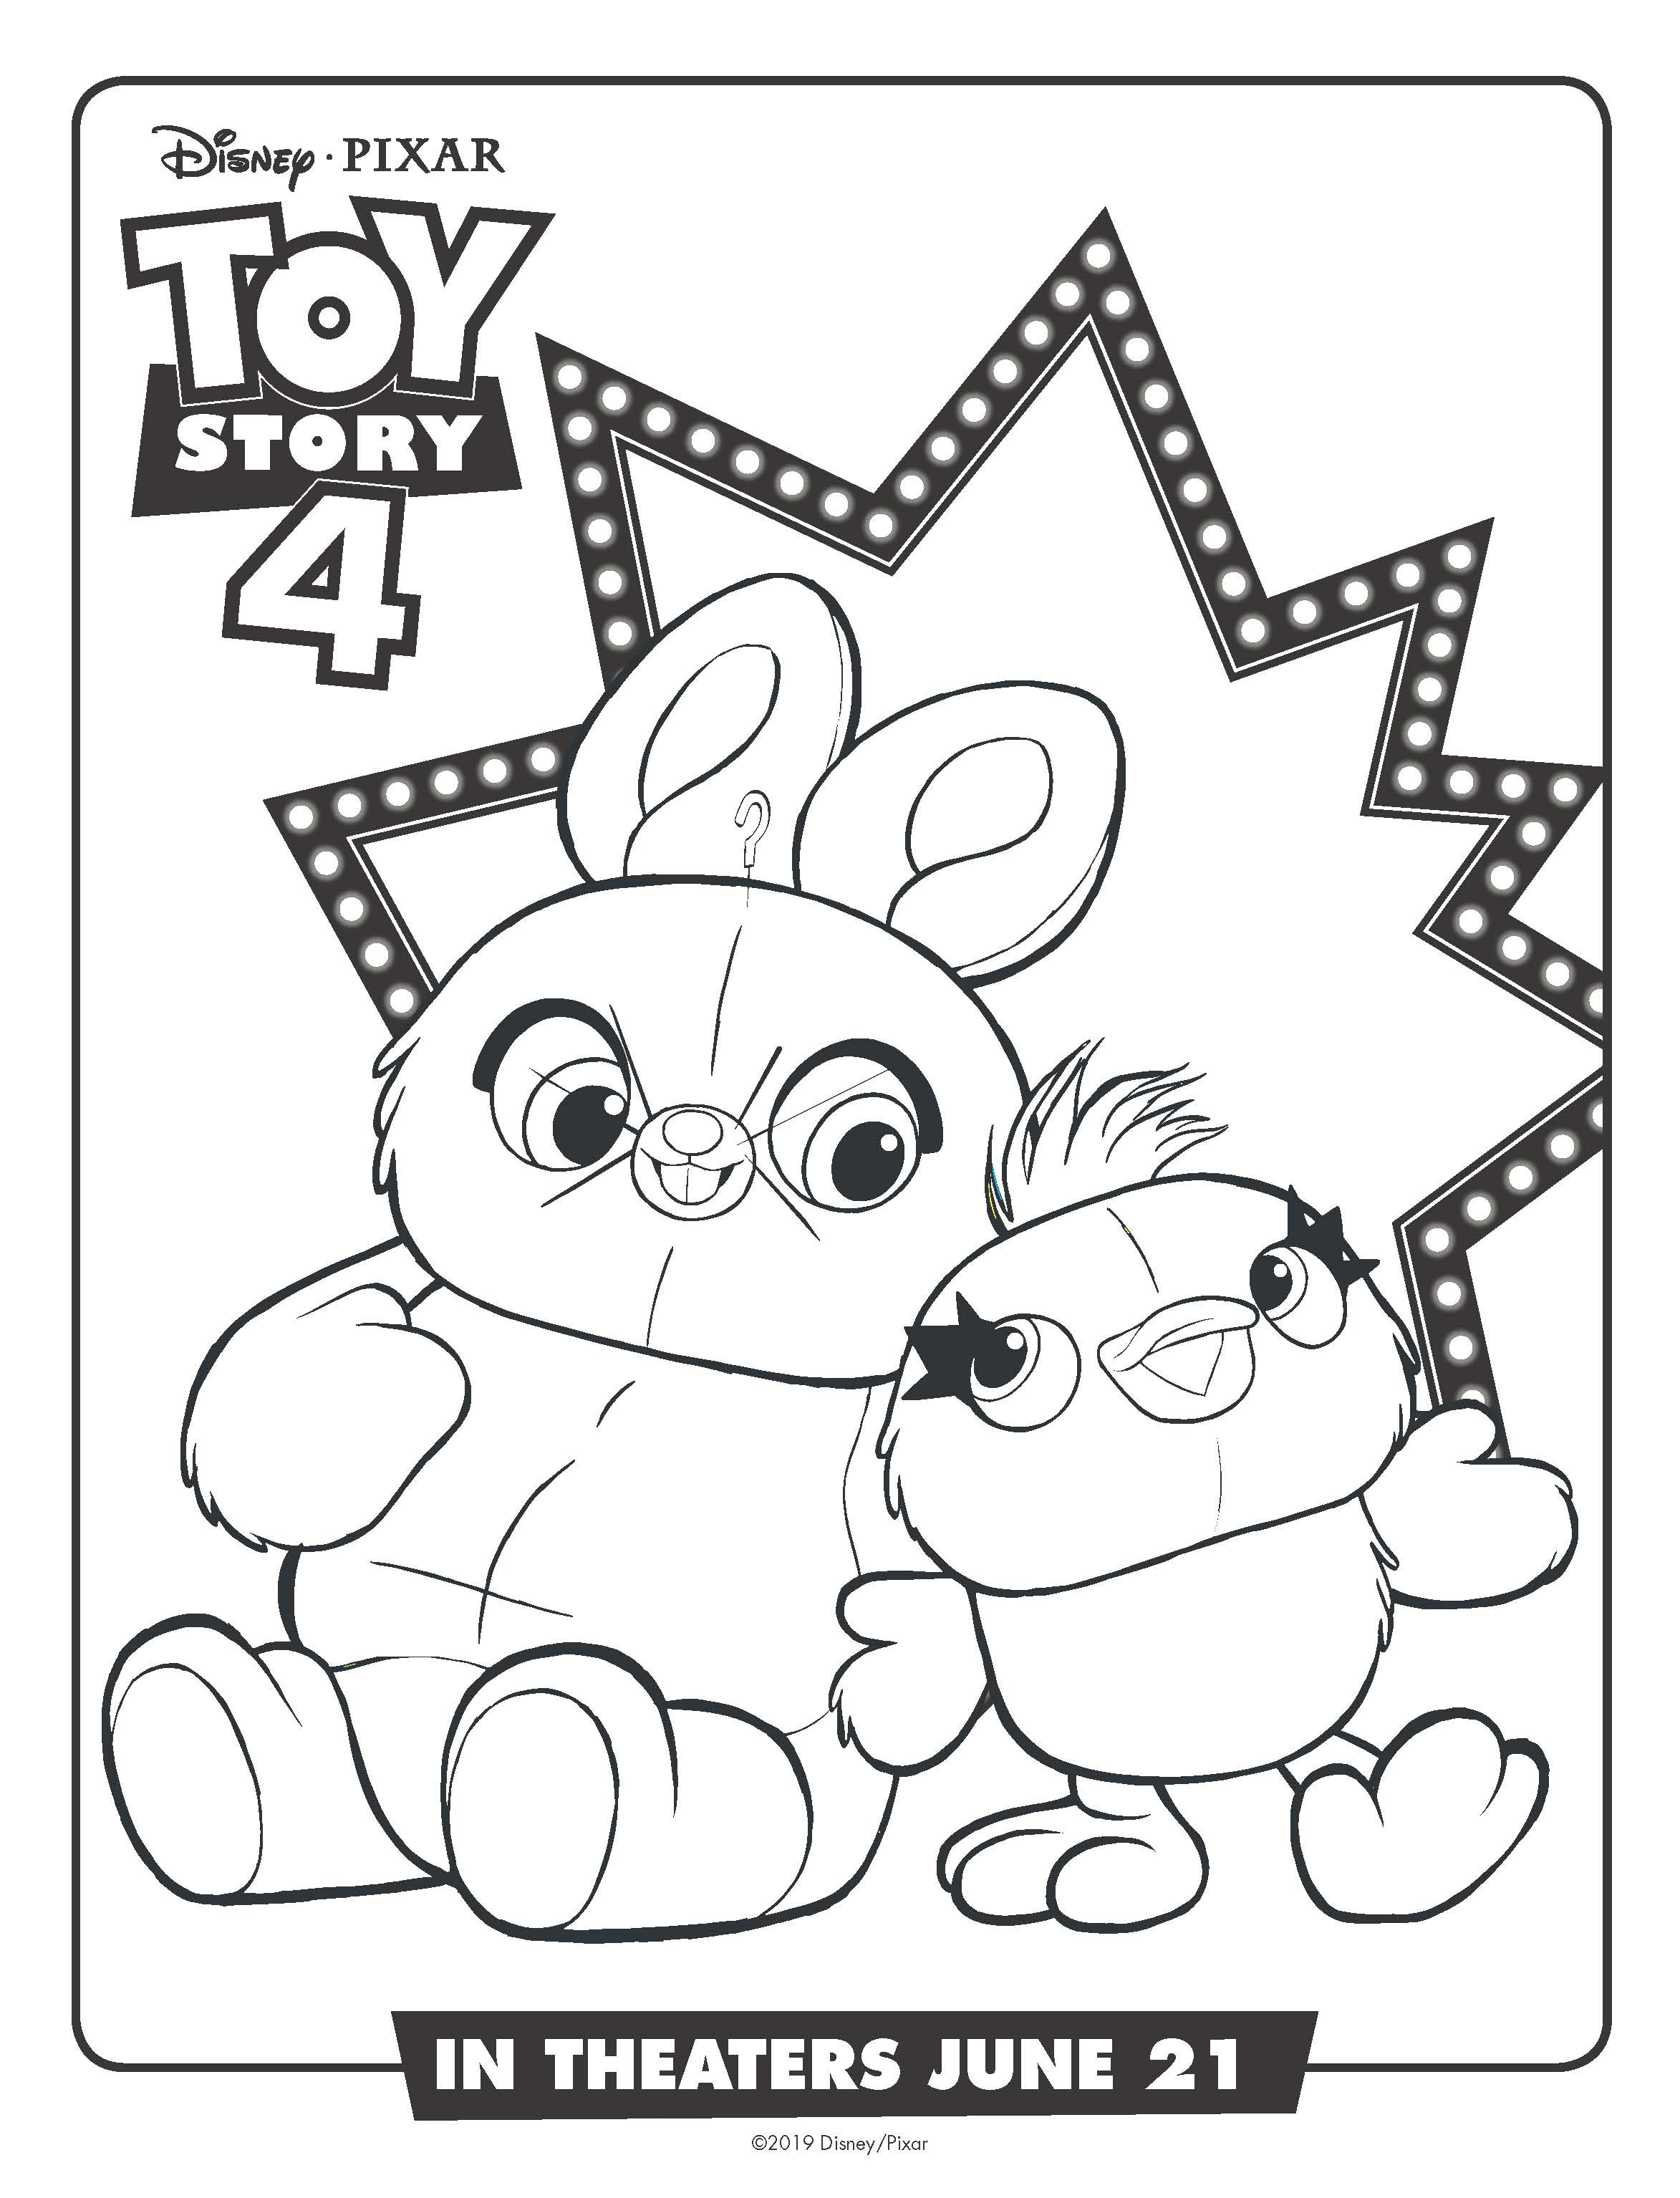 10 Free Toy Story 4 Coloring Pages And Printables